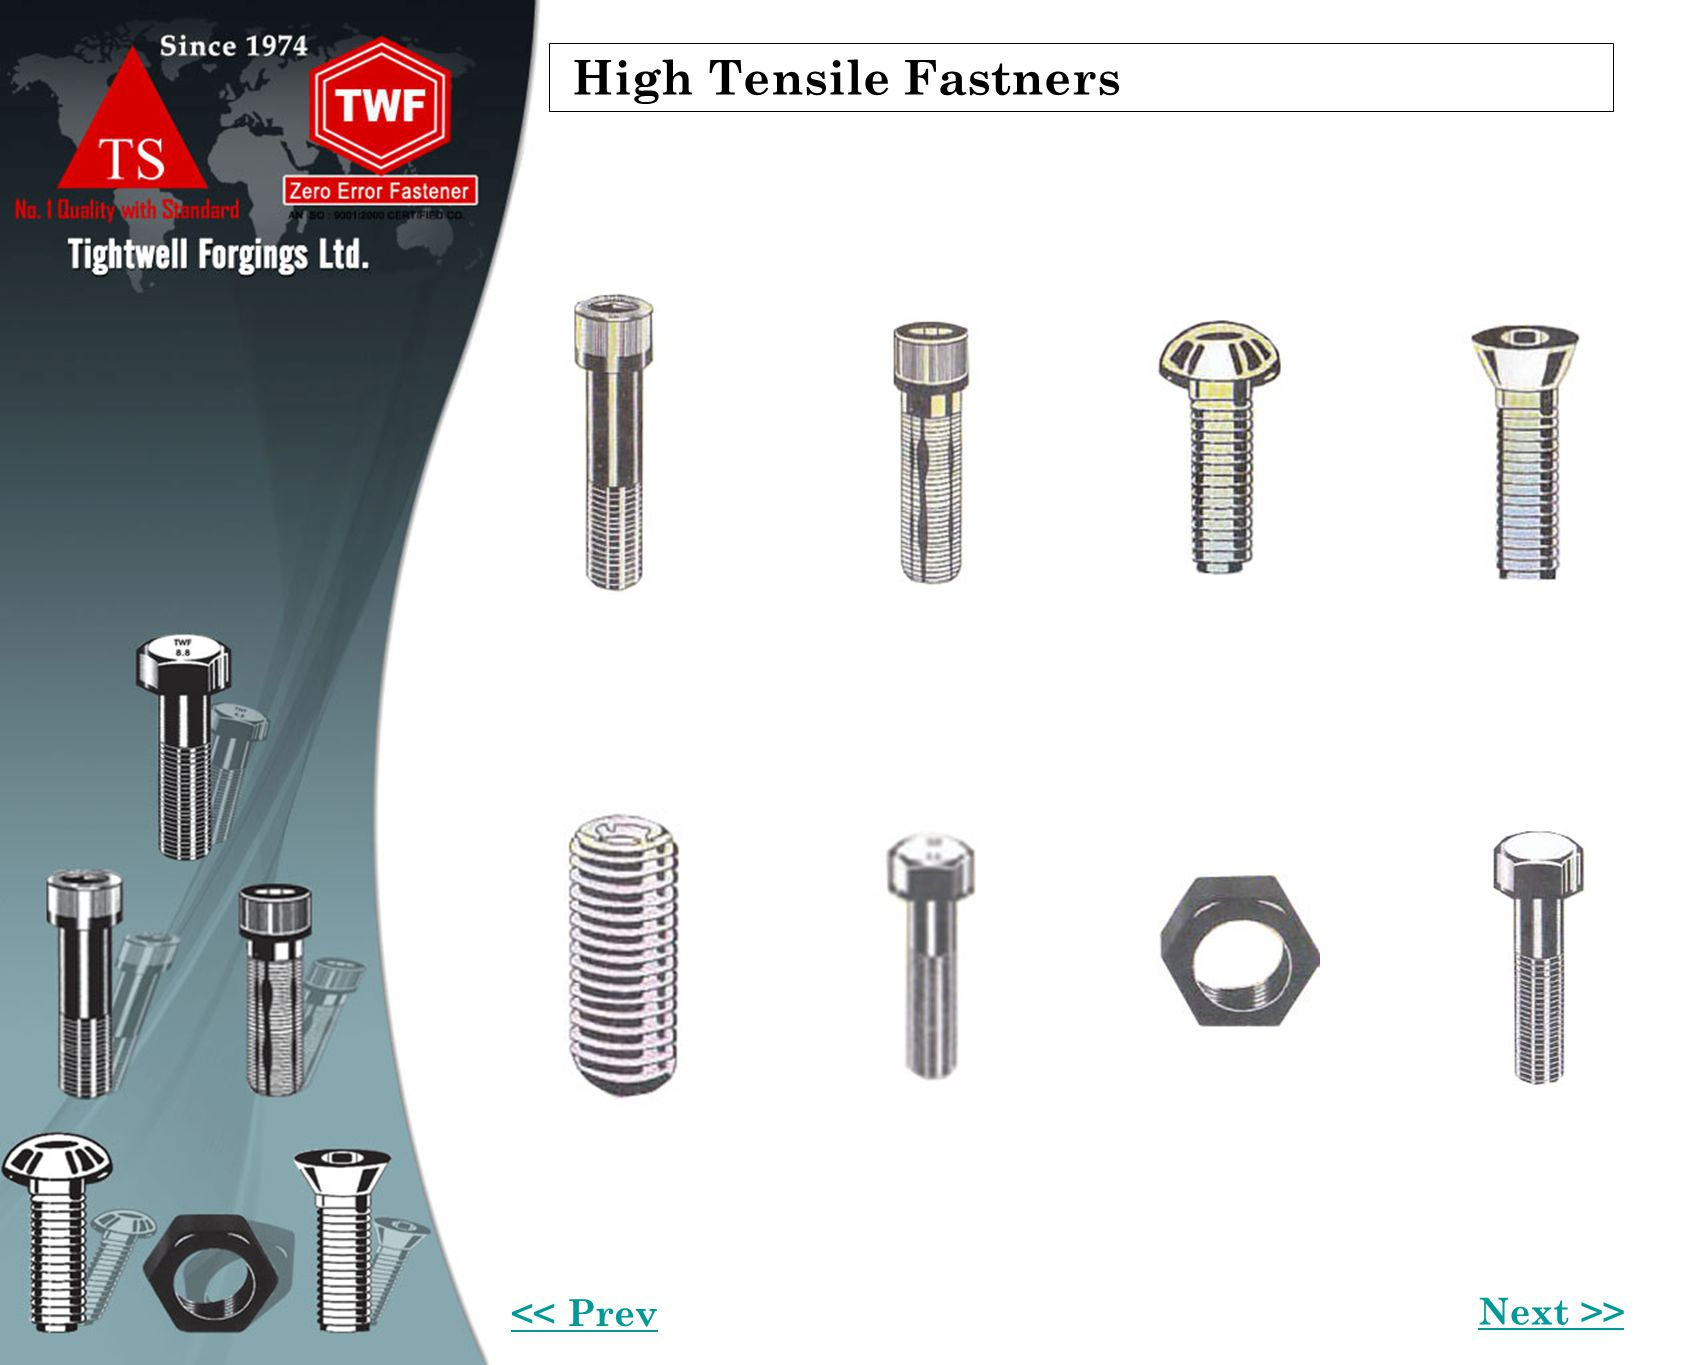 High Tensile Fastners Next >> << Prev